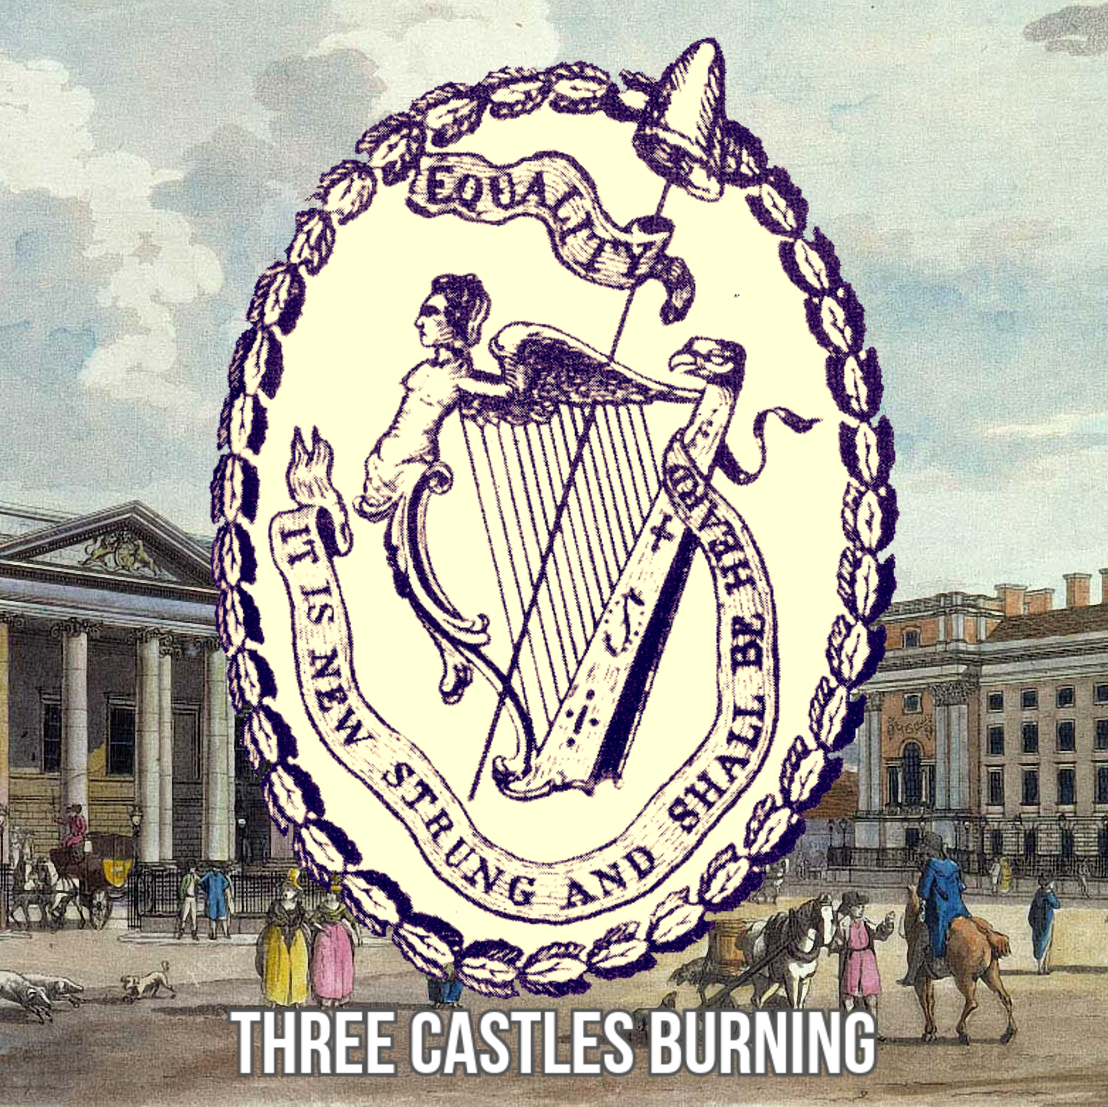 A City Of Protestant Radicals? Dublin and the United Irishmen (with Fergus Whelan)